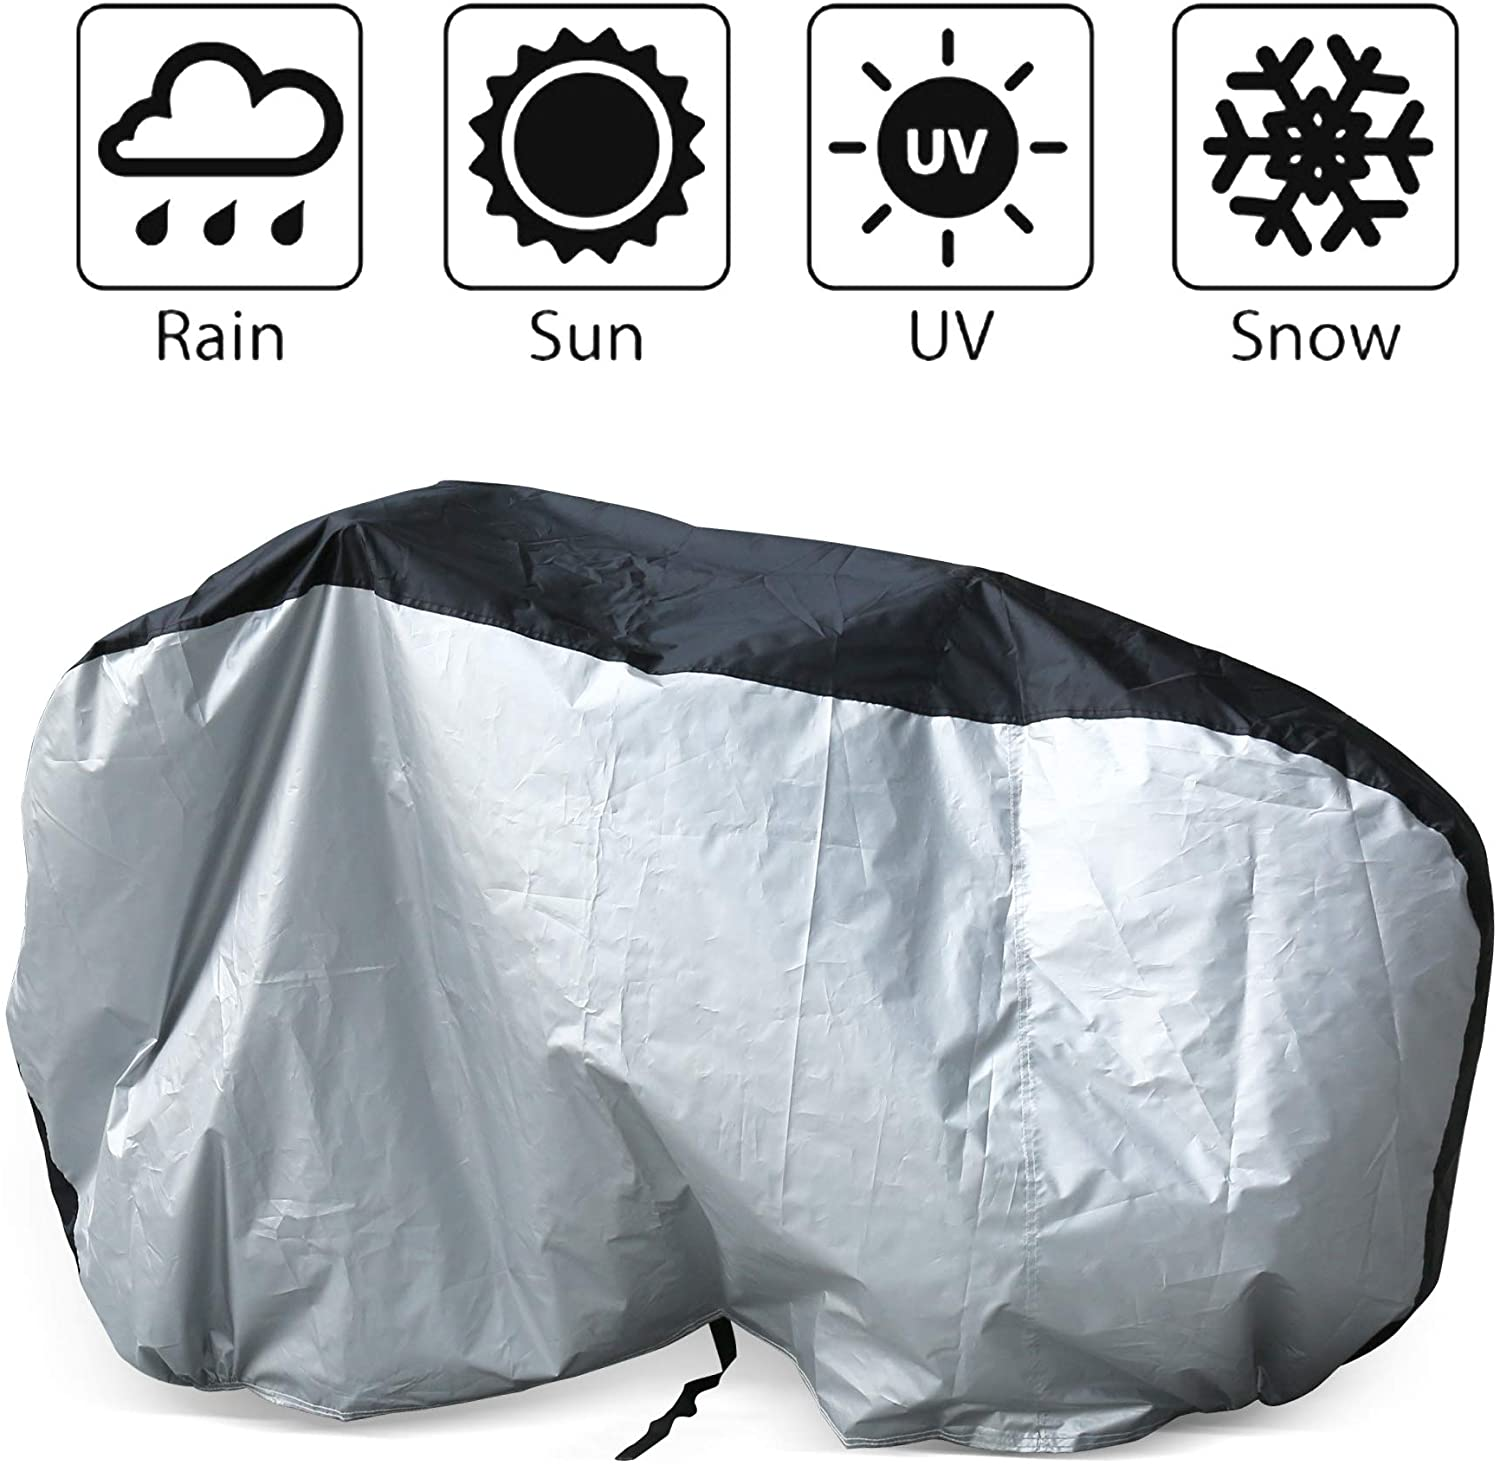 Cymax Bike Cover Heavy Duty Waterproof Bicycle Cover Dust Rain Snow Cover with